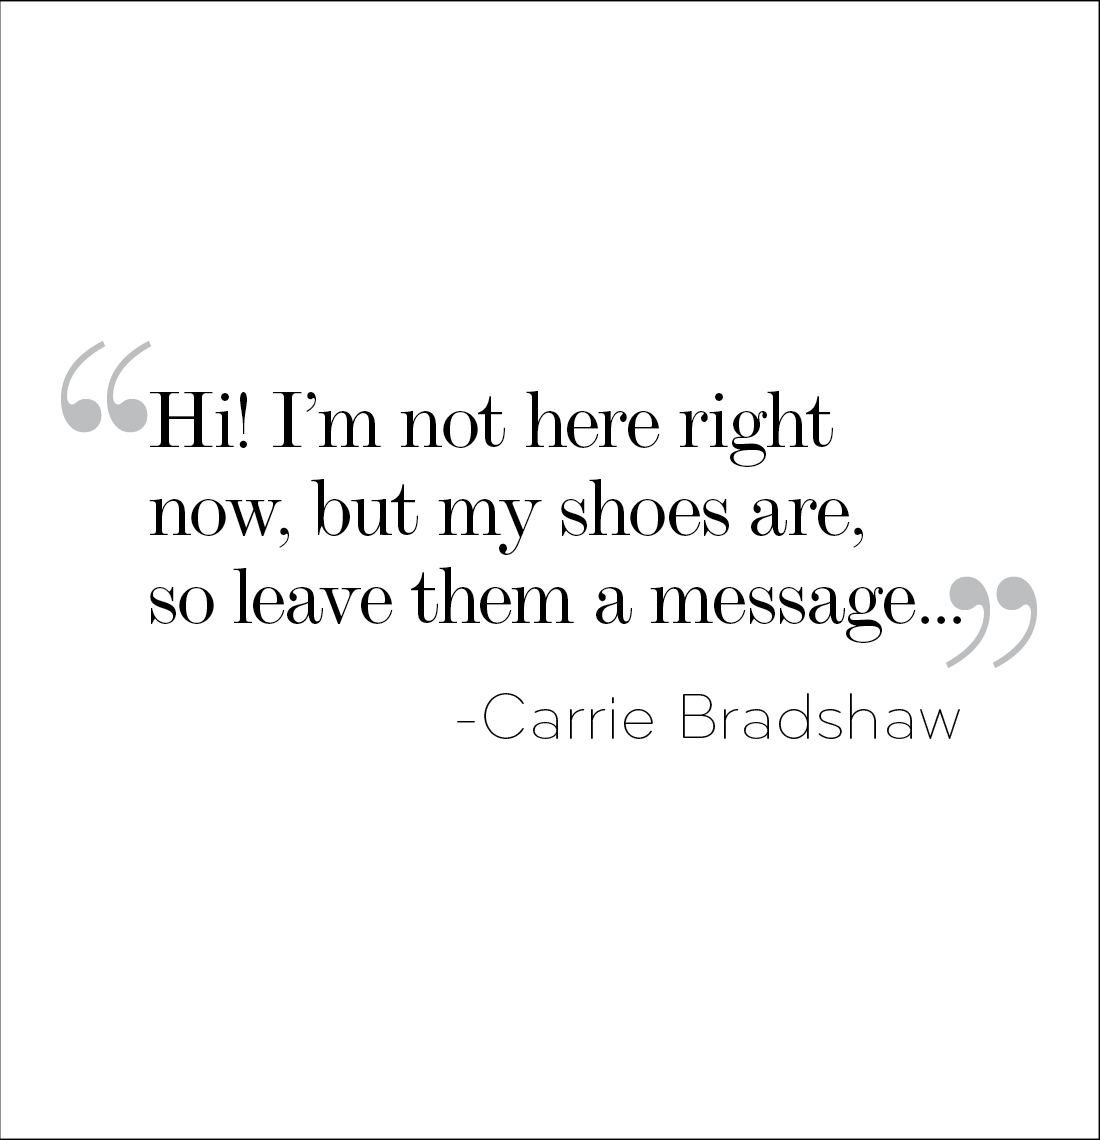 Quotes About Shoes And Friendship Quotes About Friendship Carrie Bradshaw Cinderella Never Asked